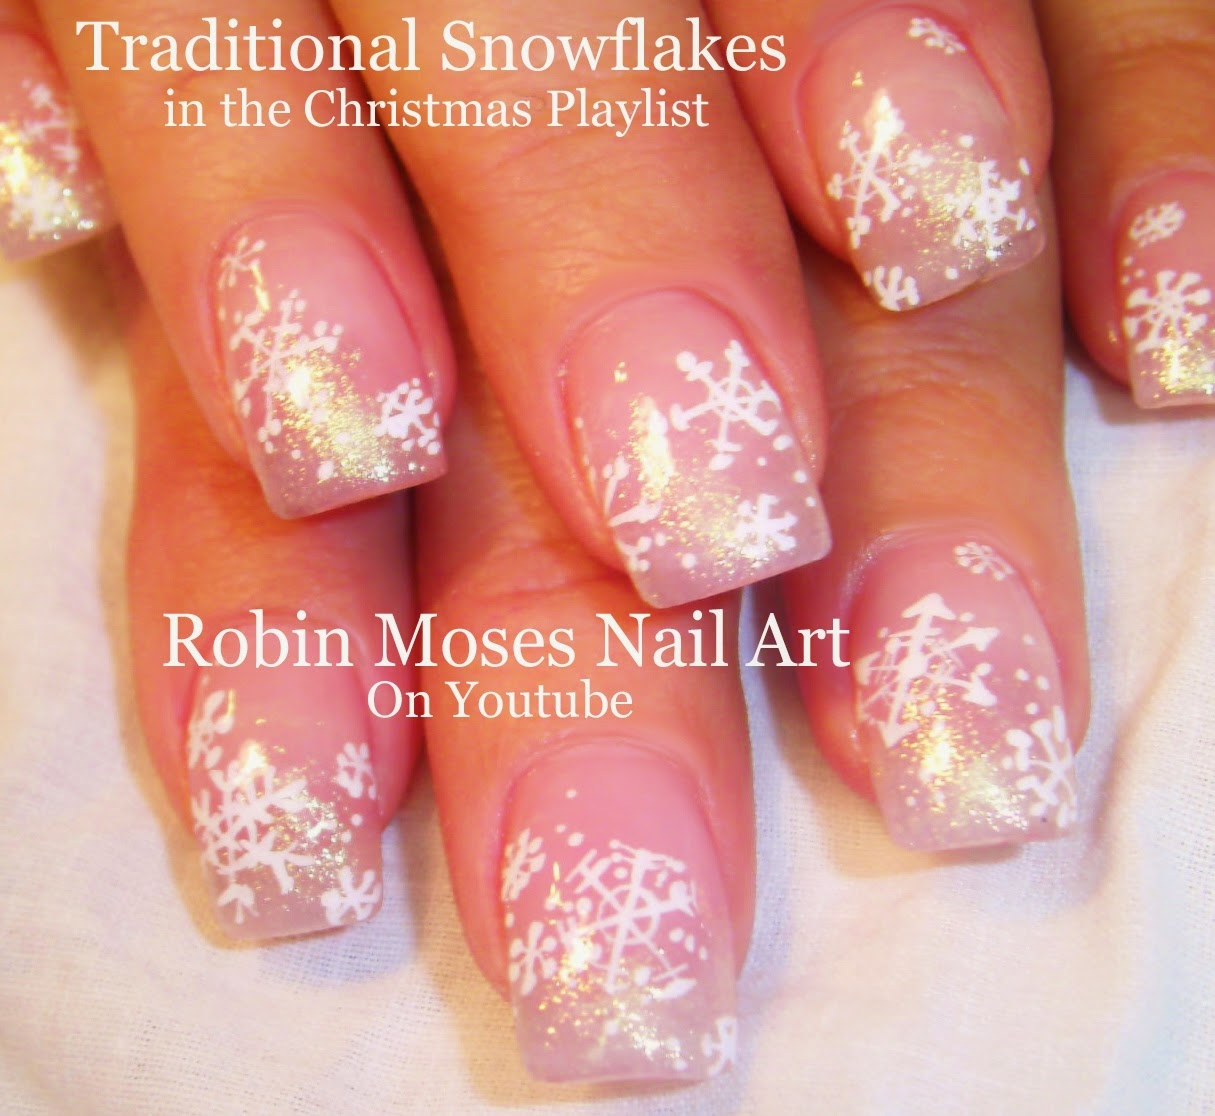 Robin moses nail art christmas nails christmas nail art christmas nails christmas nail art snowflake nails white snowflakes winter nails xmas nails candy canes candy cane nail art design ideas prinsesfo Image collections